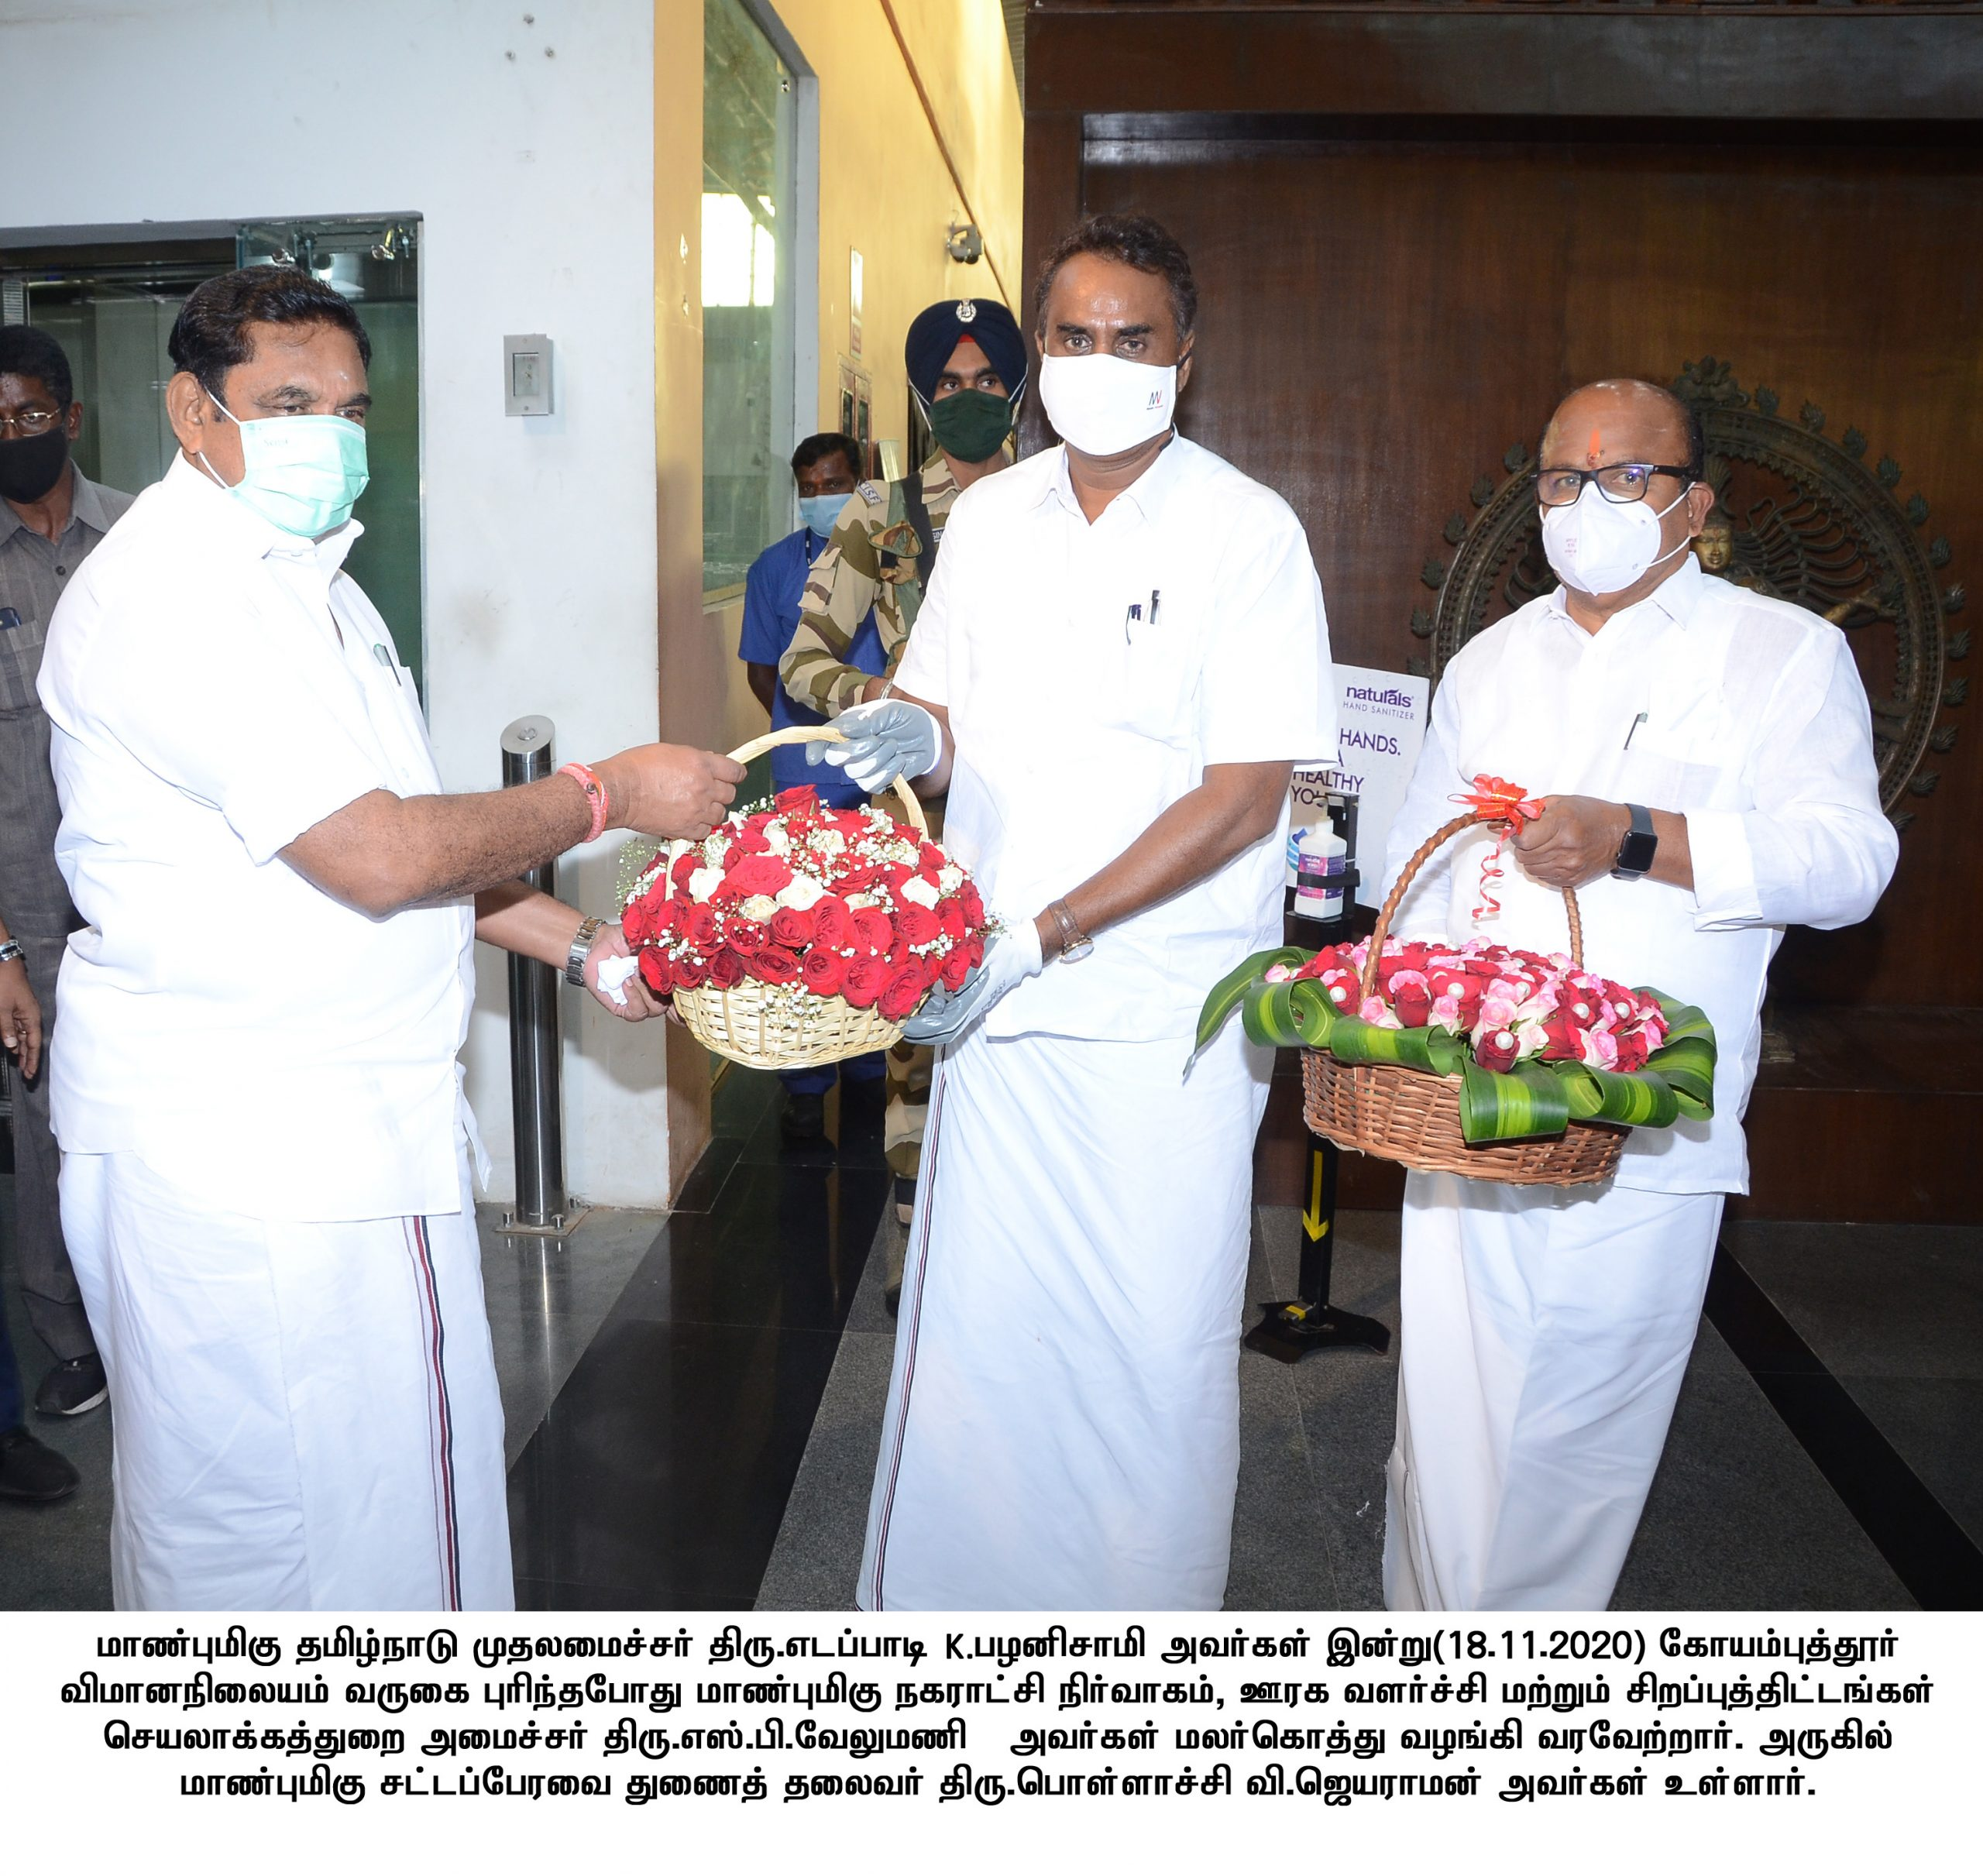 Hon'ble Chief Minister of Tamil Nadu visited Coimbatore